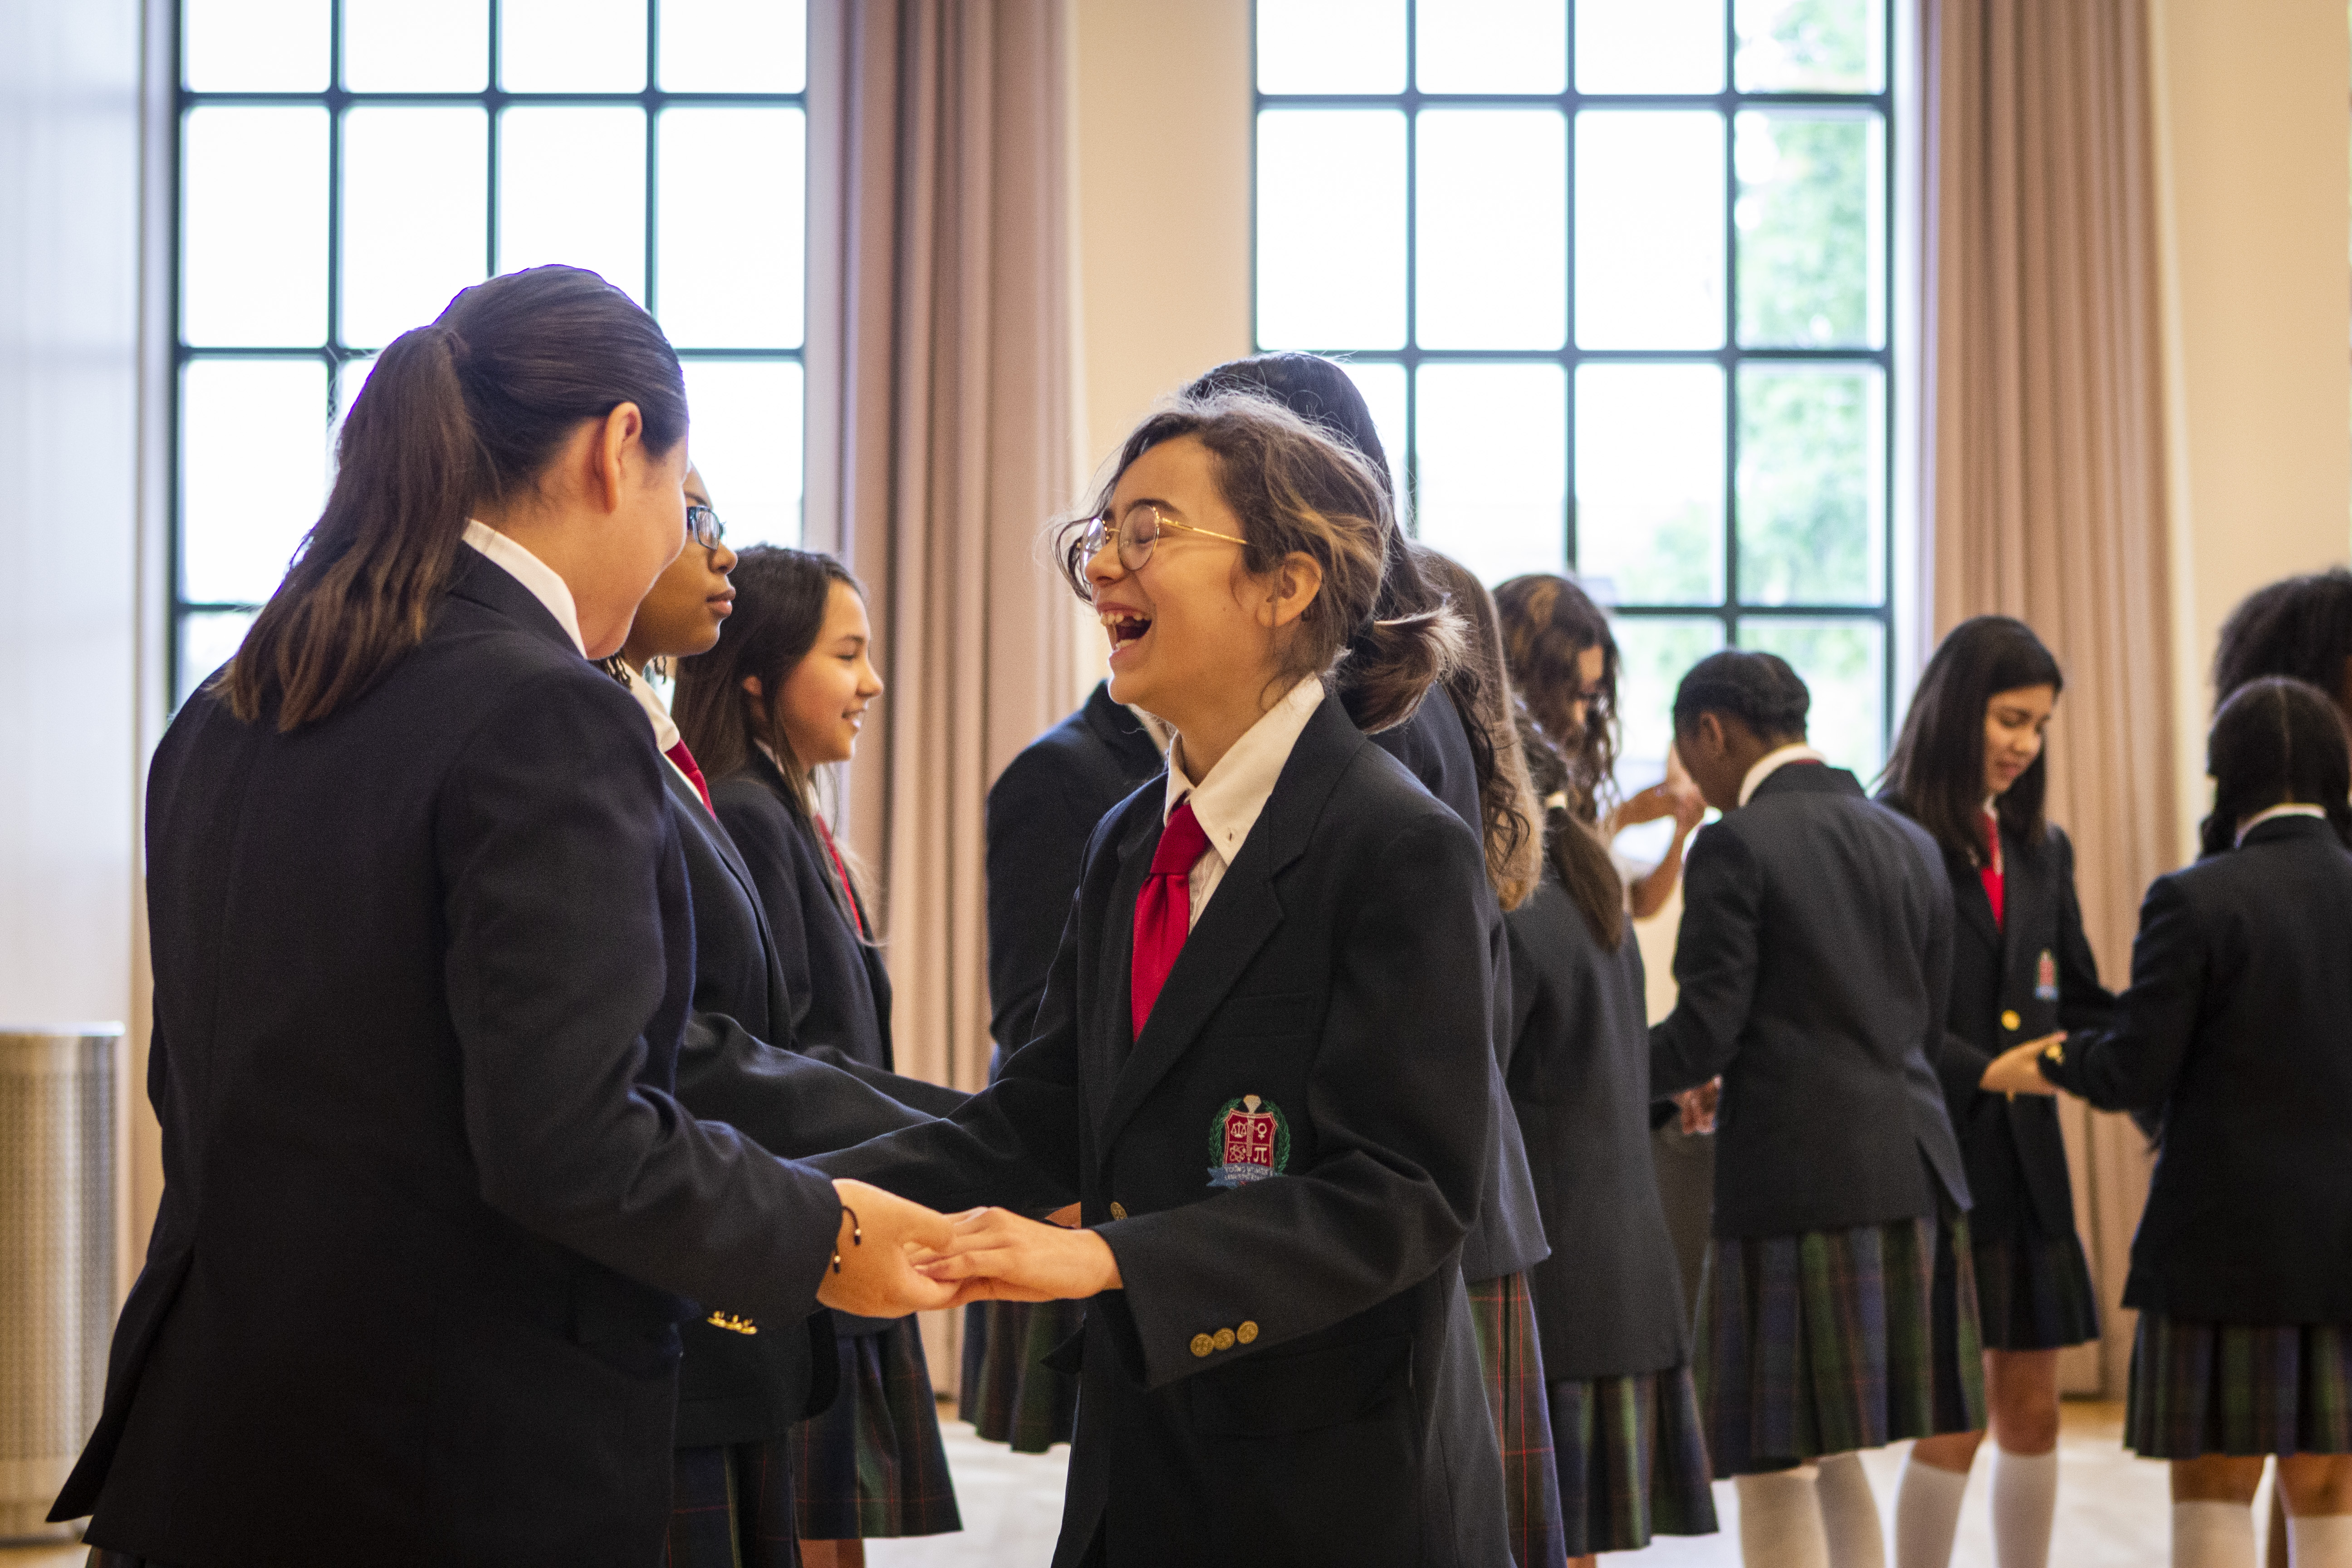 Thumbnail image for Local students get 'on their feet' thanks to Bass Hall Young Patrons Club! blog post